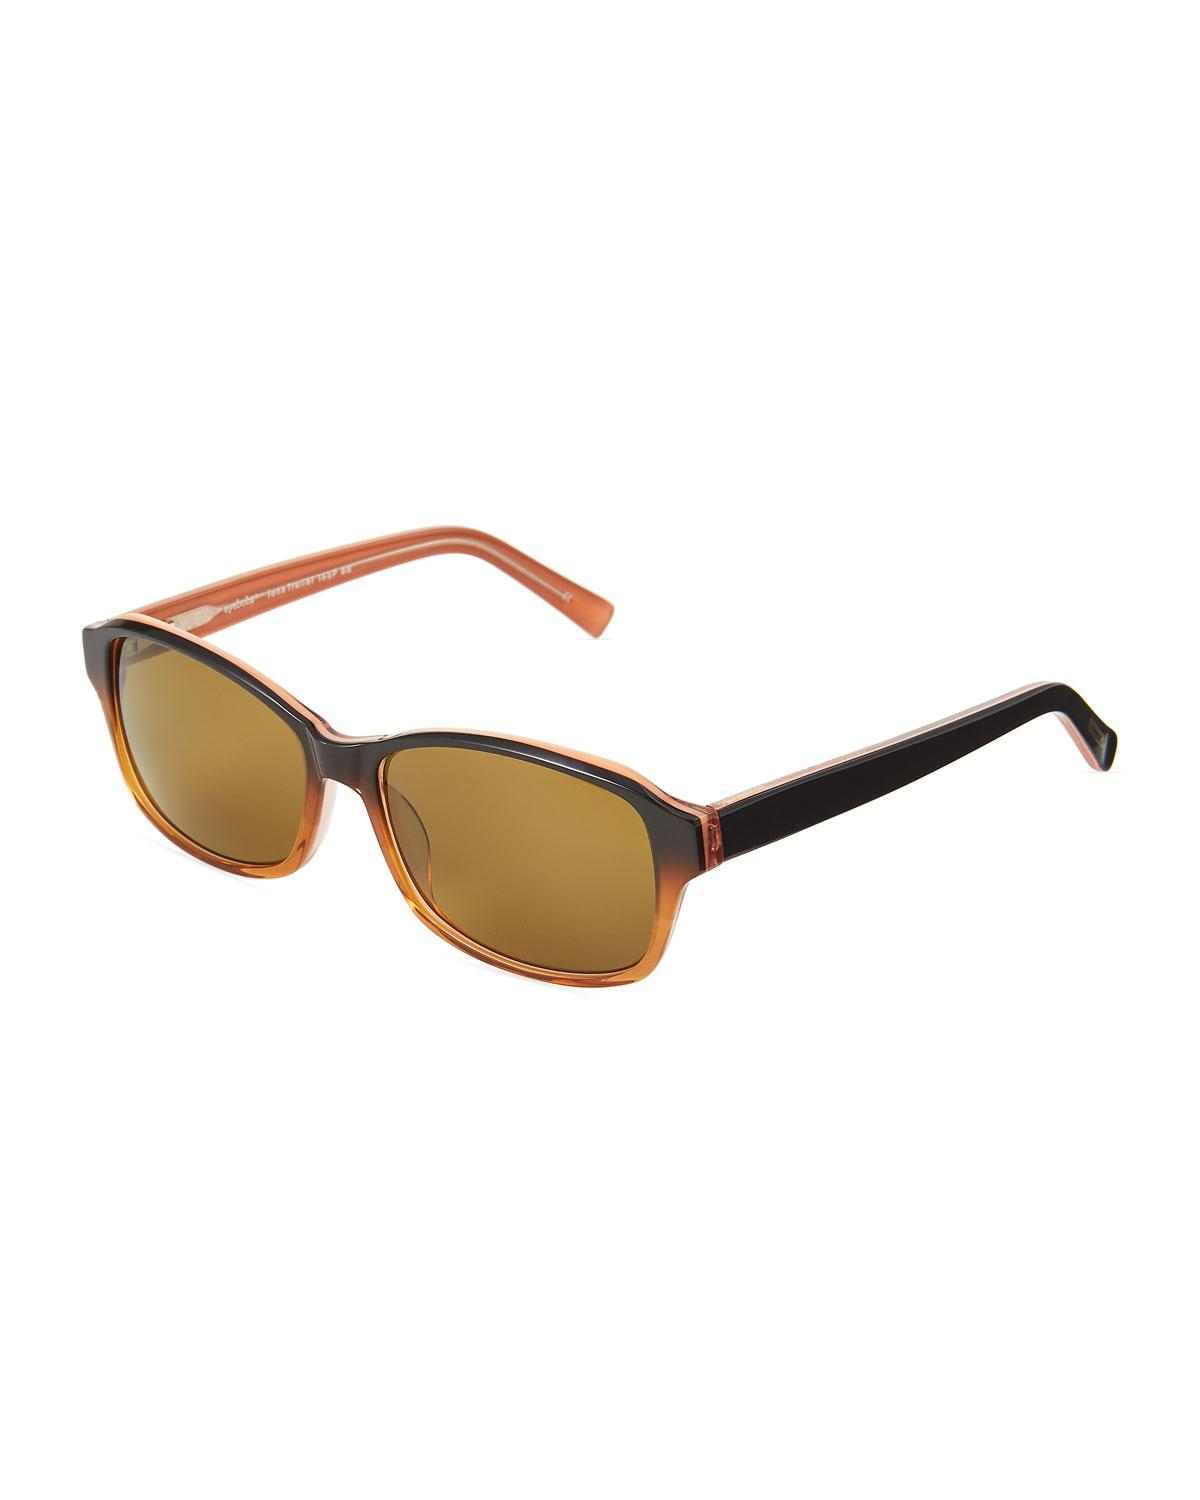 b65614f0316ff Lyst - Eyebobs Iona Trailer Square Polarized Acetate Sunglasses in Brown